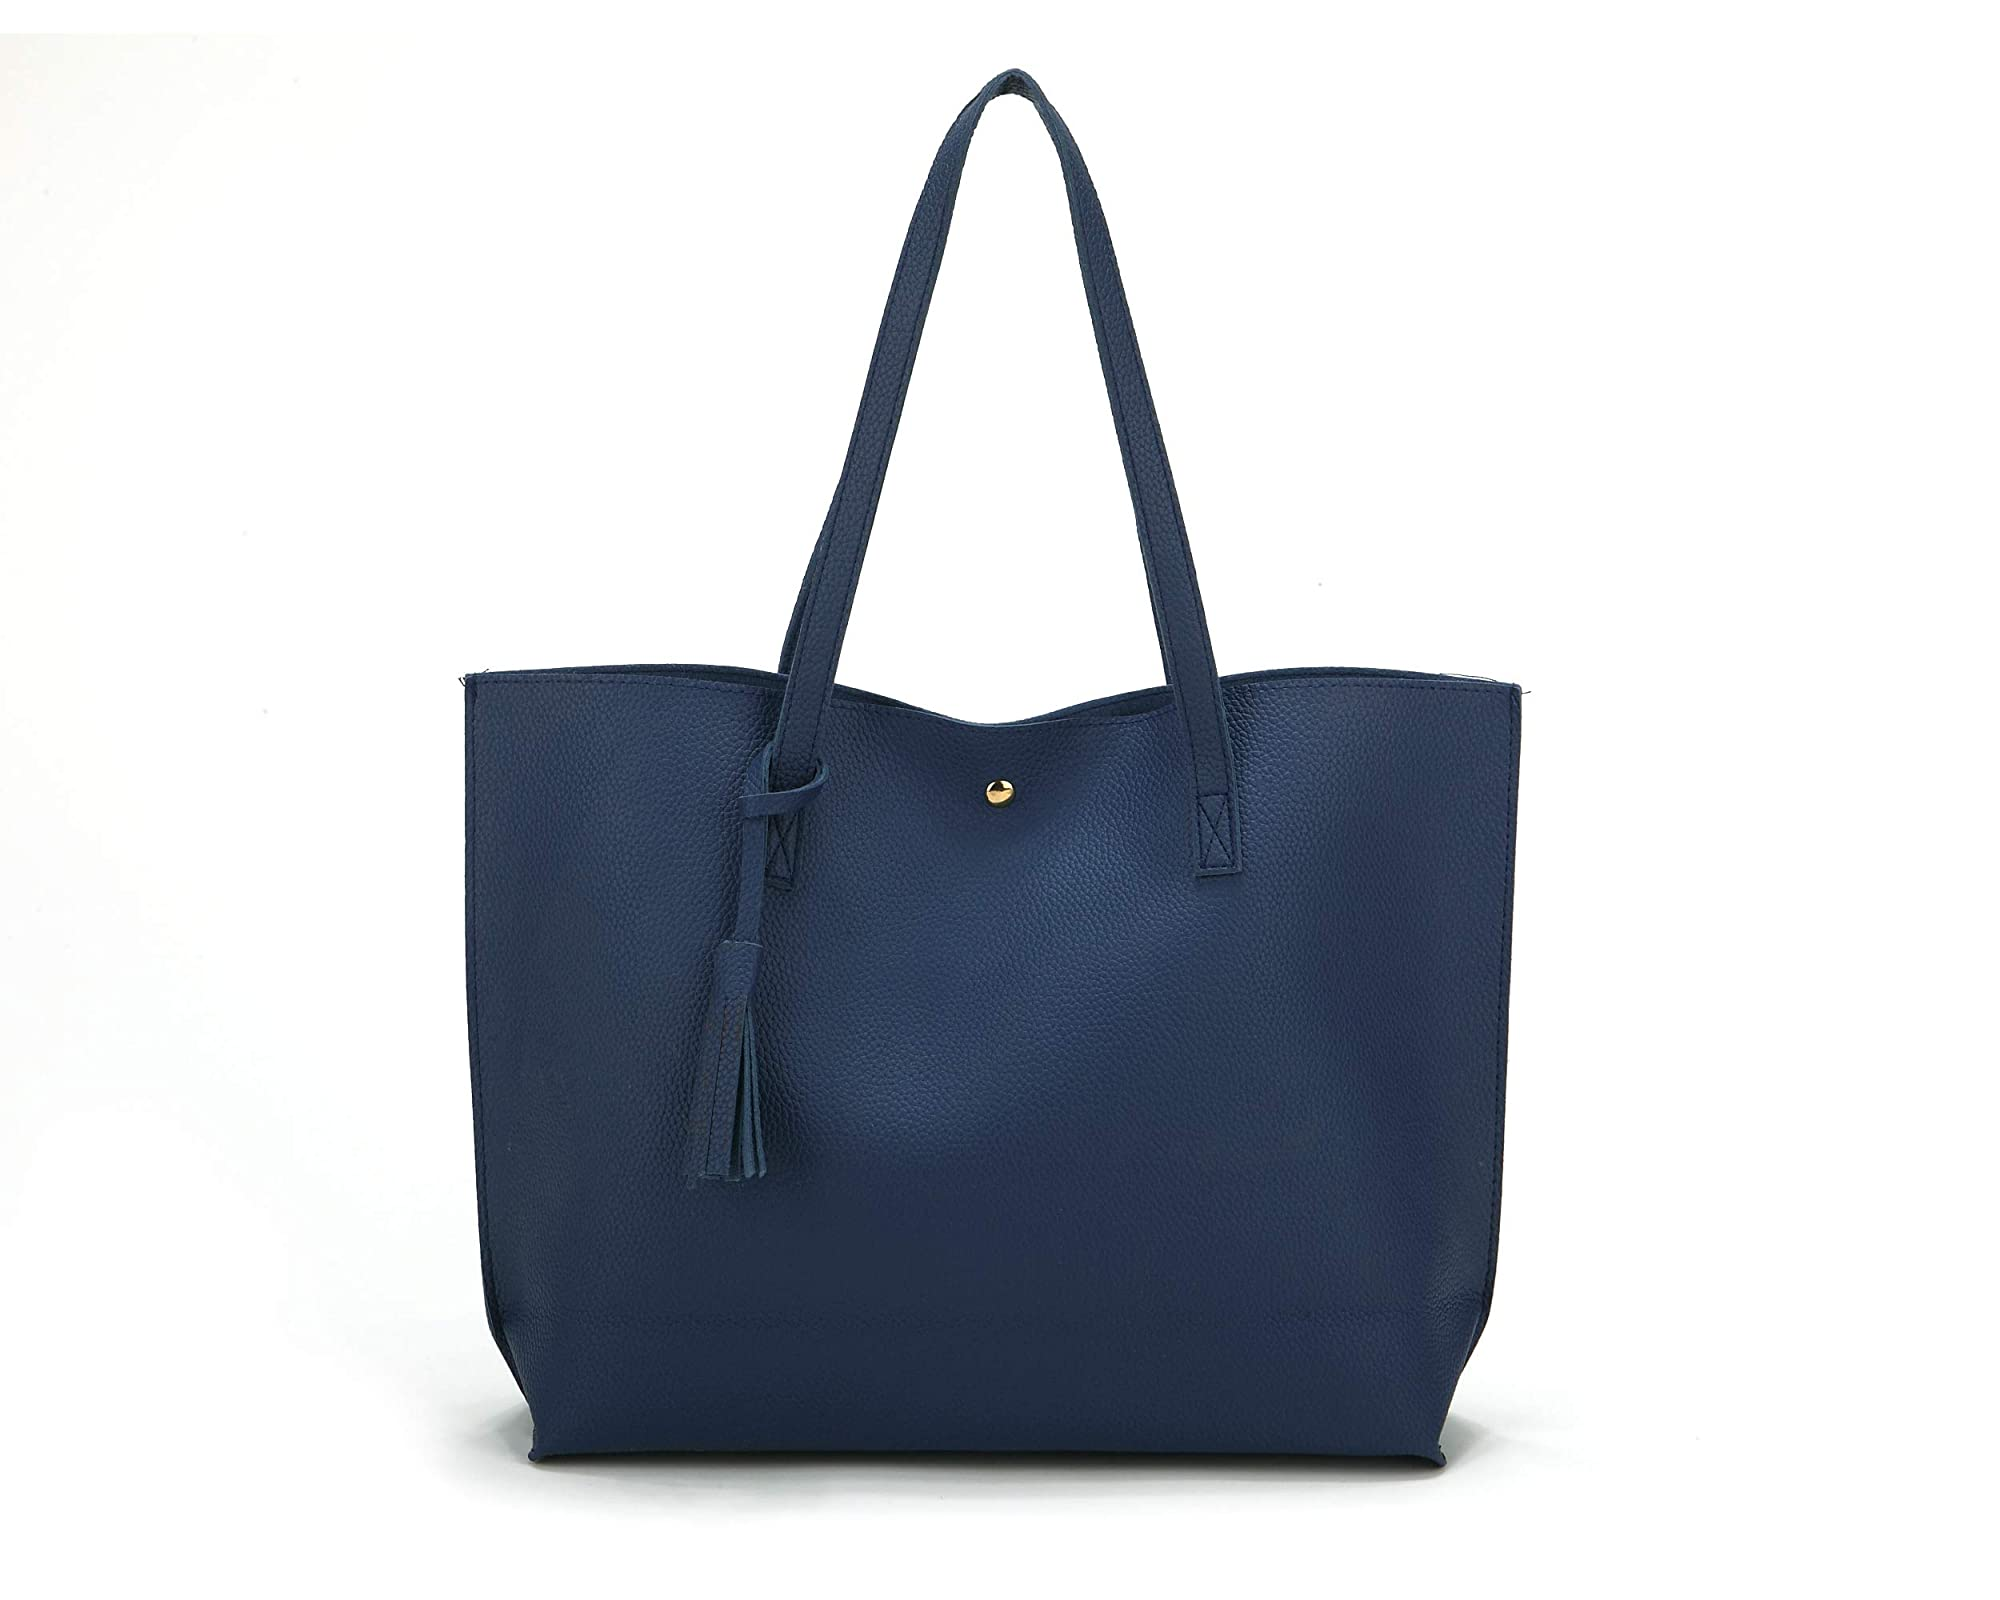 Top Handle Tote Bags With Tassel